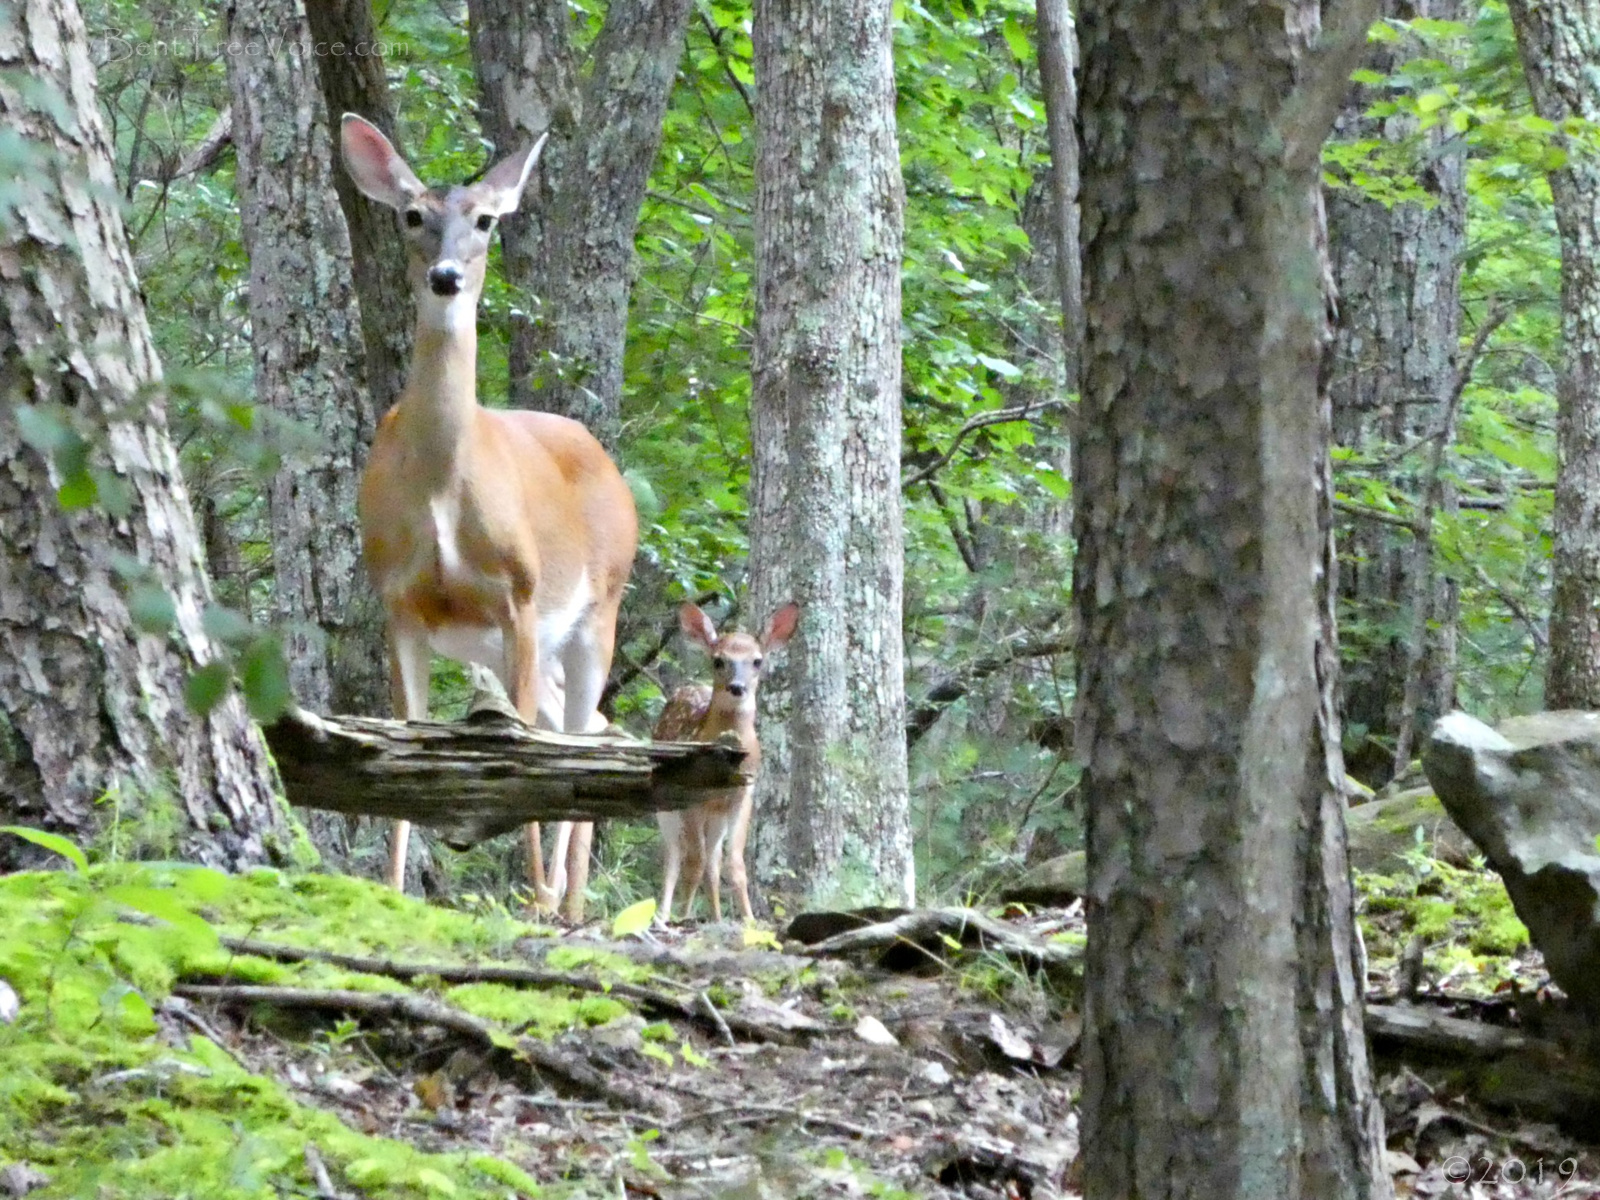 July 17, 2019 - Doe and Fawn strike the same pose in Bent Tree